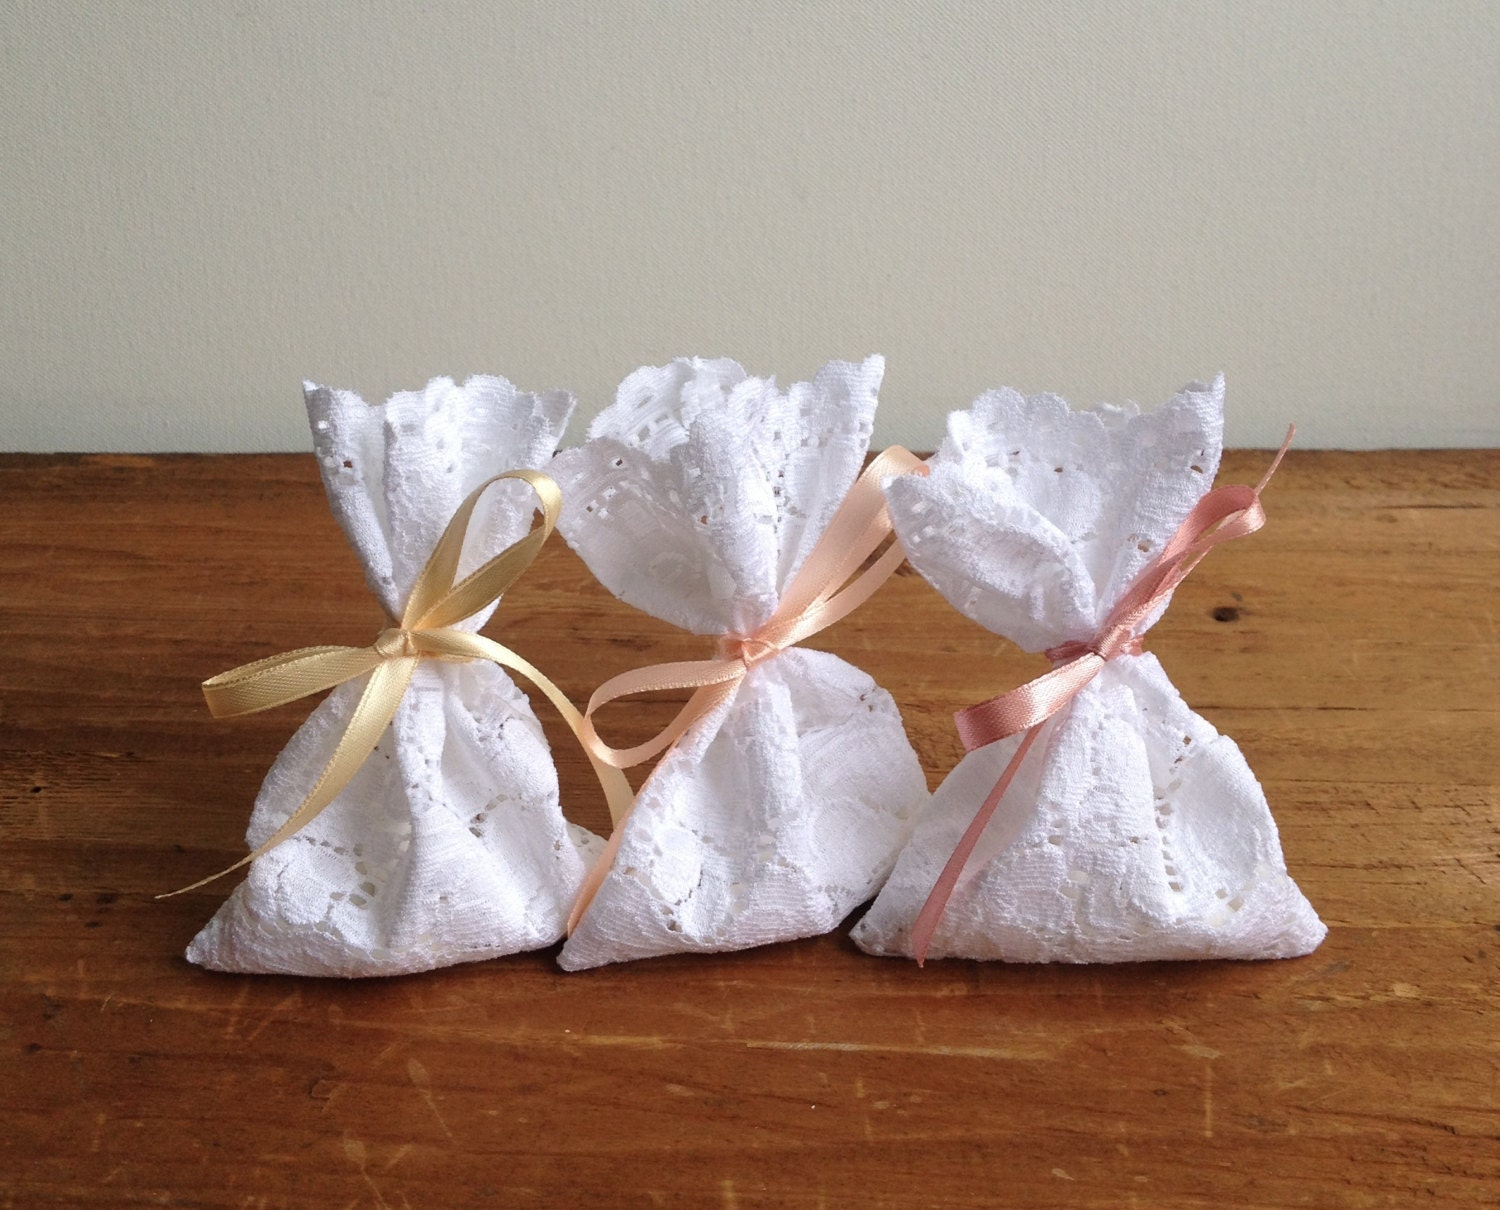 Italian Wedding Gifts: Lace Favor Bag Italian Wedding Favors Jewelry Pouches